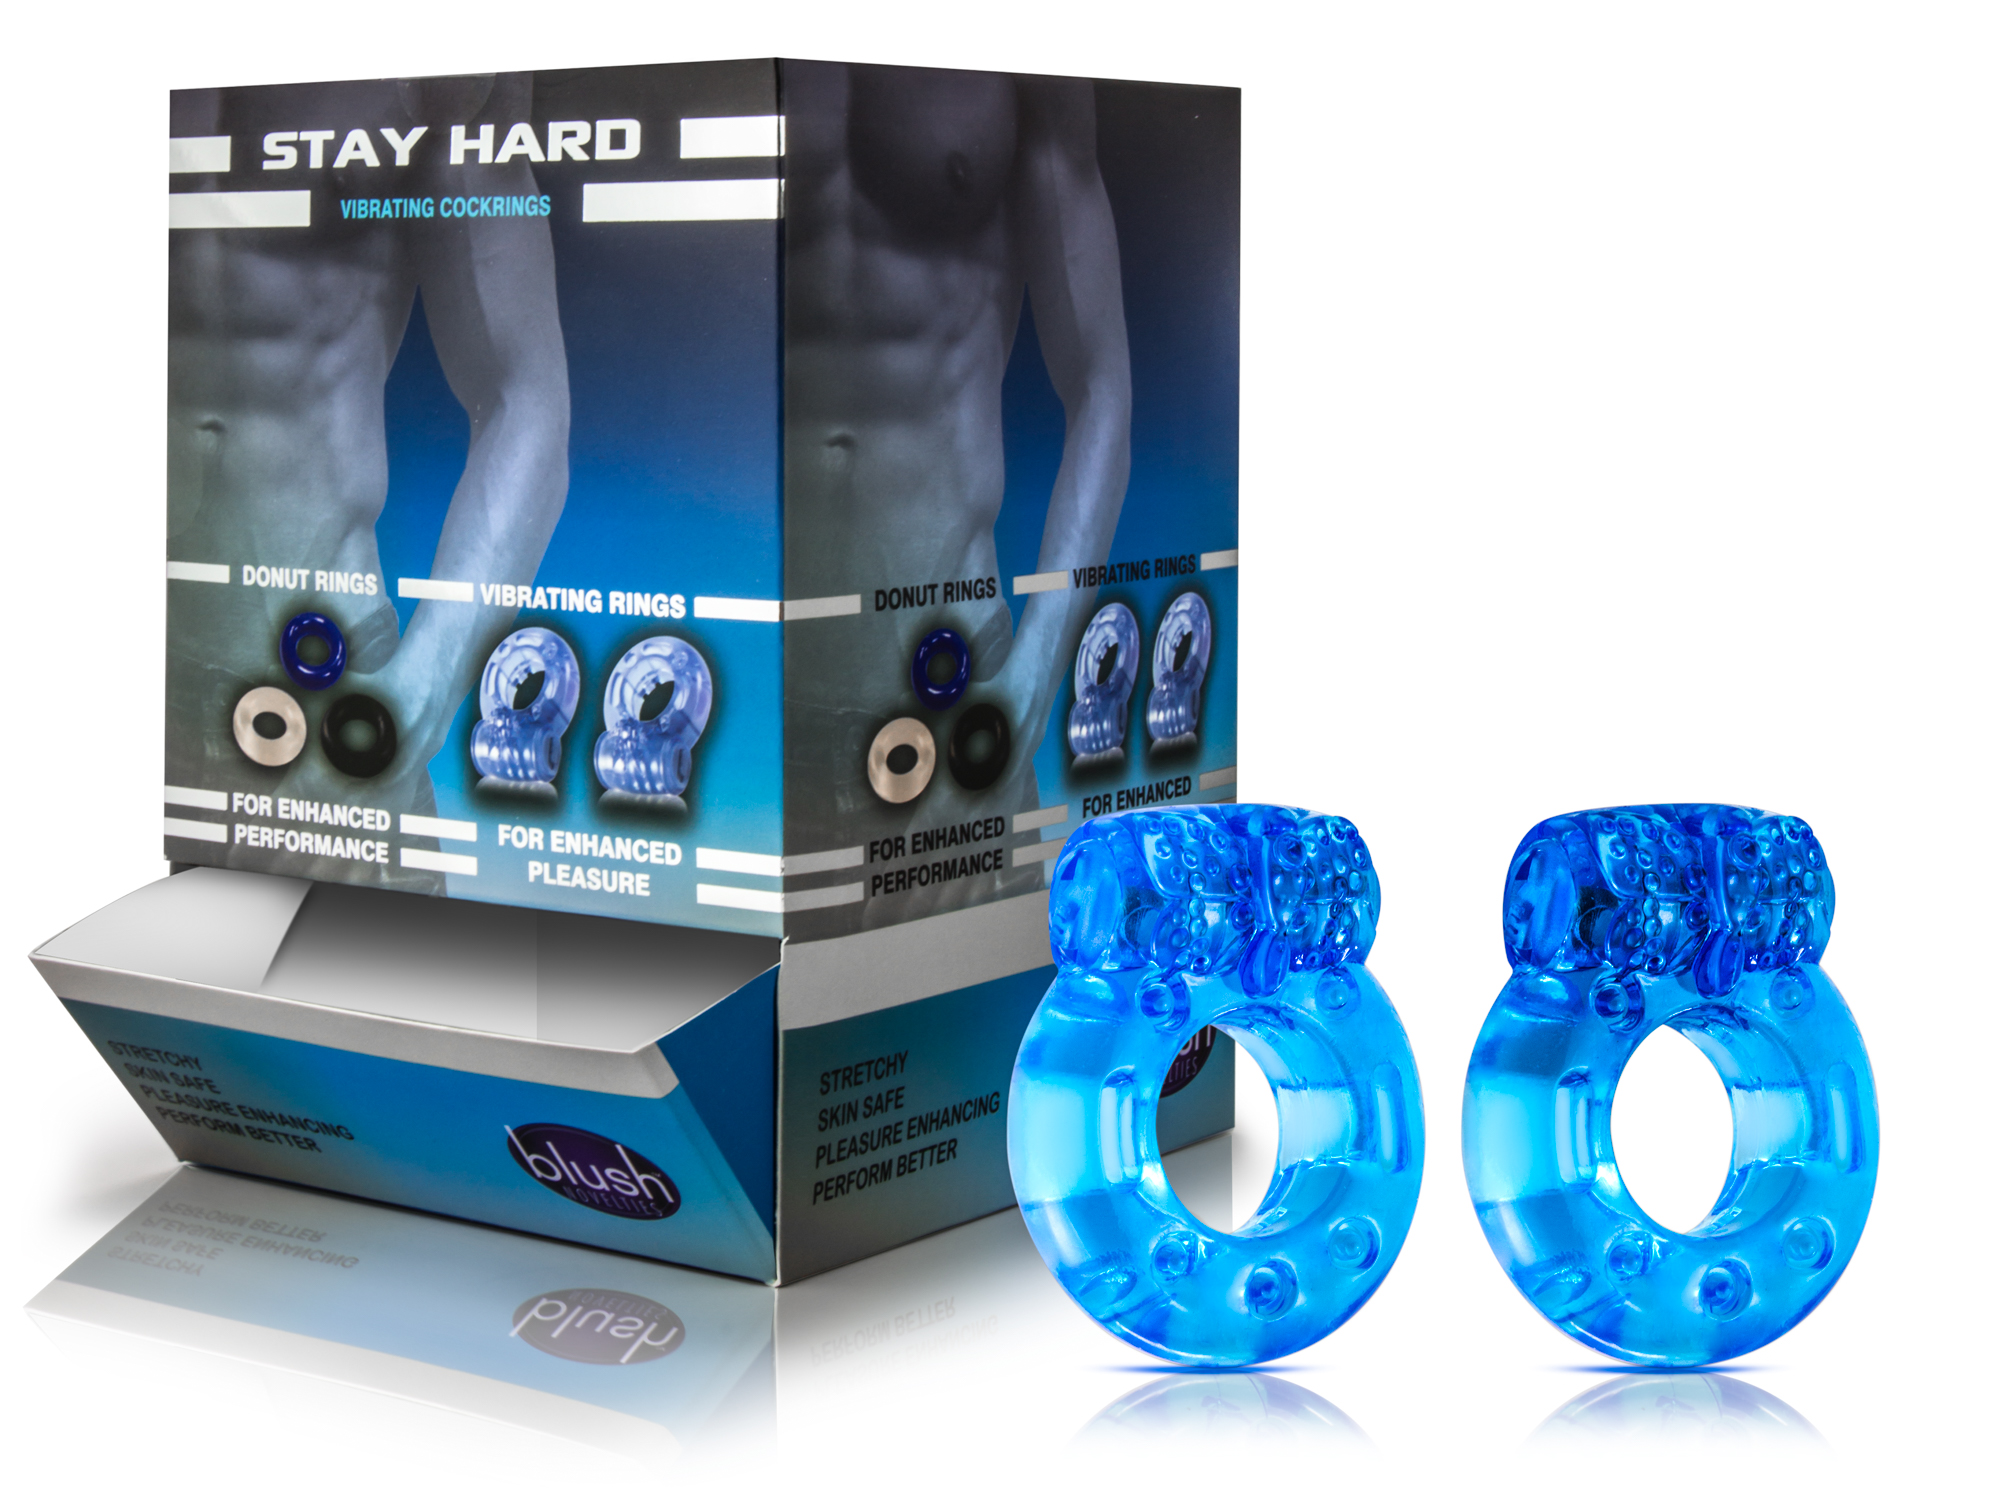 Stay Hard - Disposable vibrating cockrings -32 pc. PDQ  Display